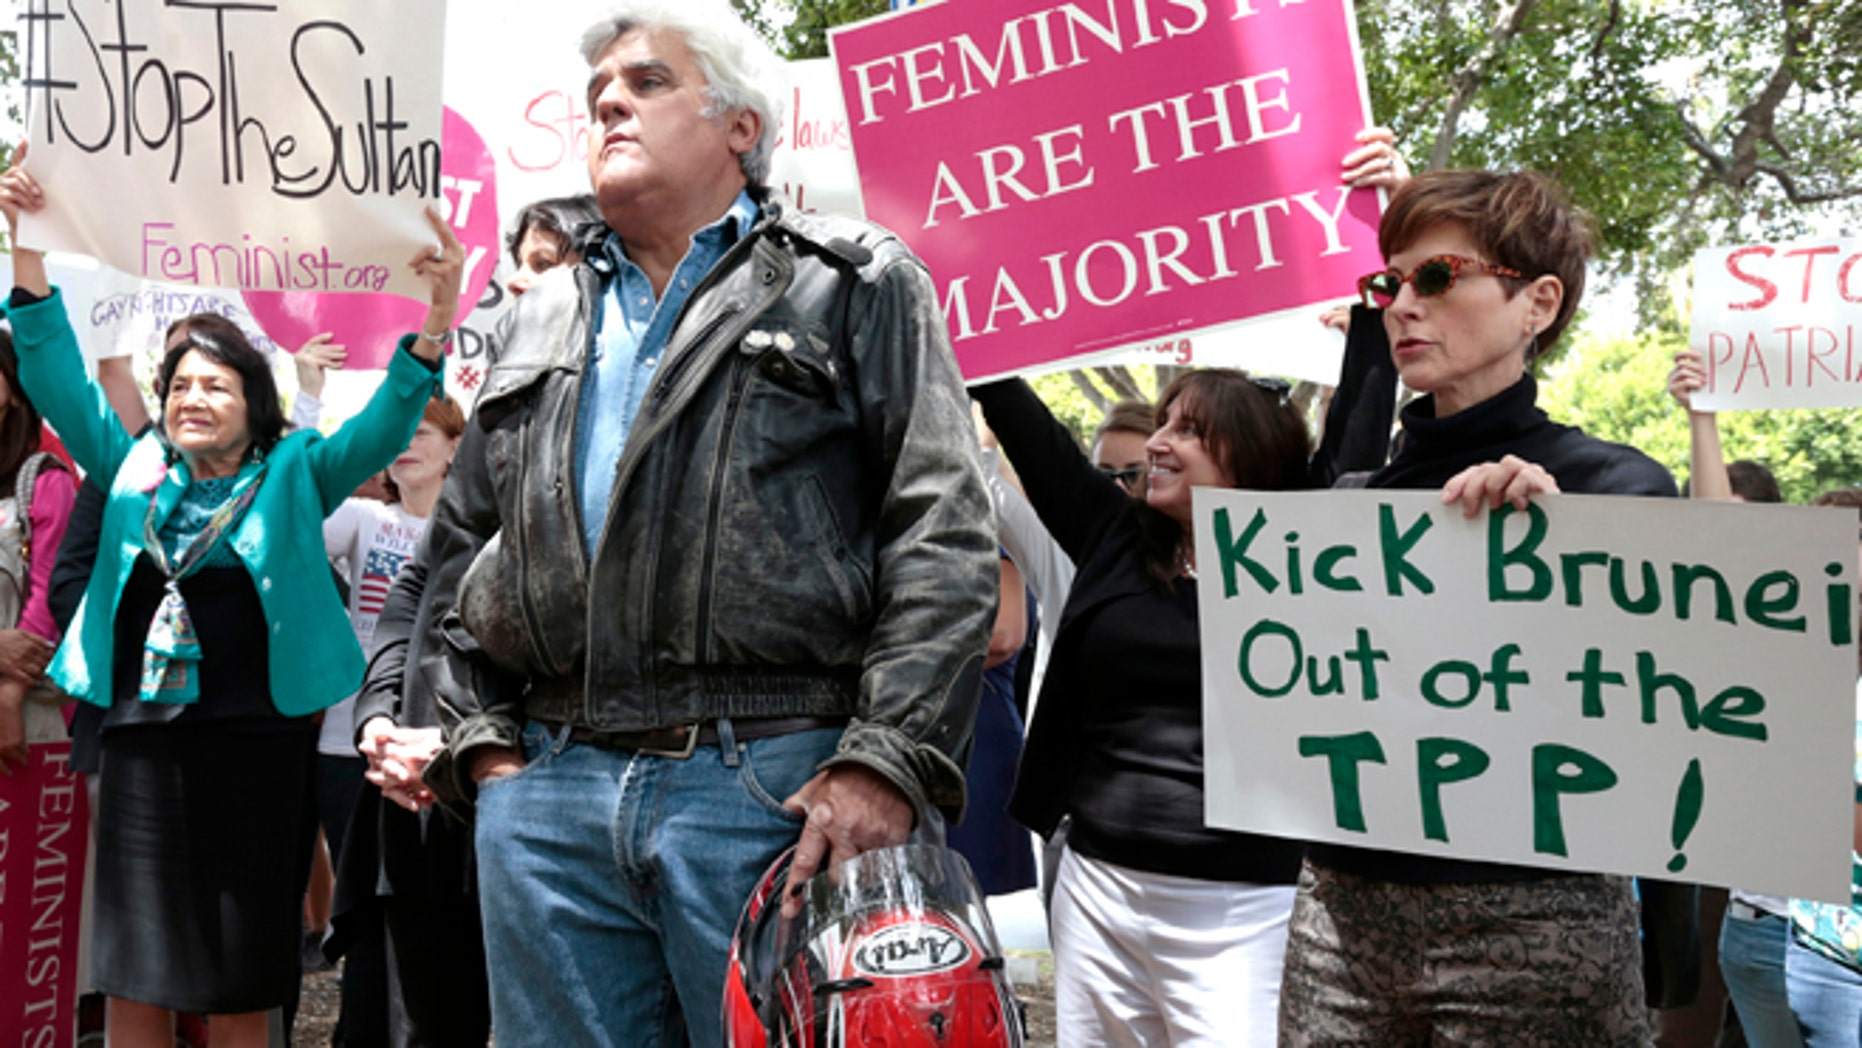 TV personality Jay Leno (C) attends a rally protesting against Brunei's new strict sharia law penal code outside the Beverly Hills Hotel, which is owned by the Sultan of Brunei, in Beverly Hills, California May 5, 2014. The sultanate of Brunei becomes the first East Asian country to introduce Islamic criminal law, the latest example of a deepening religious conservatism that has also taken root in parts of neighbouring Malaysia and Indonesia. REUTERS/Jonathan Alcorn   (UNITED STATES - Tags: CIVIL UNREST RELIGION ENTERTAINMENT) - RTR3NWAD